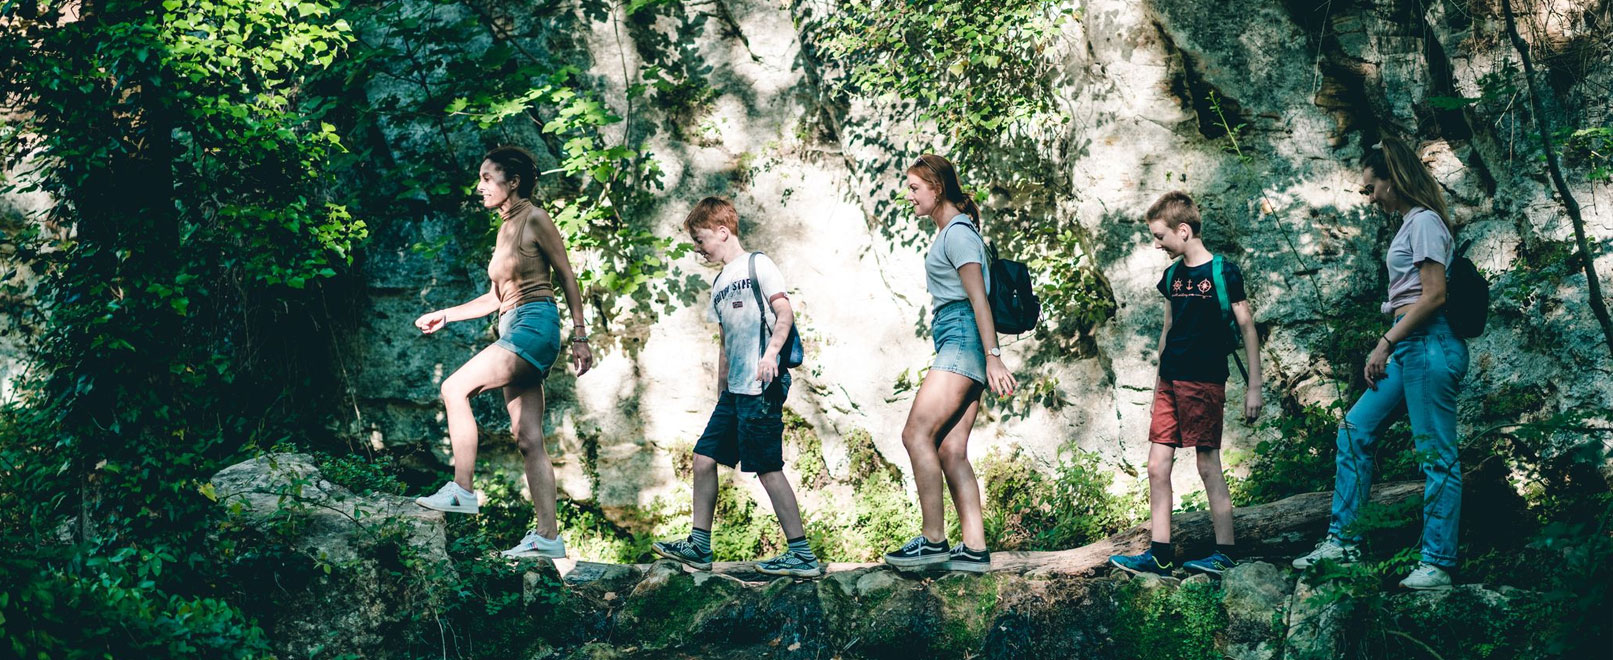 Hiking in Provence © O'Brien